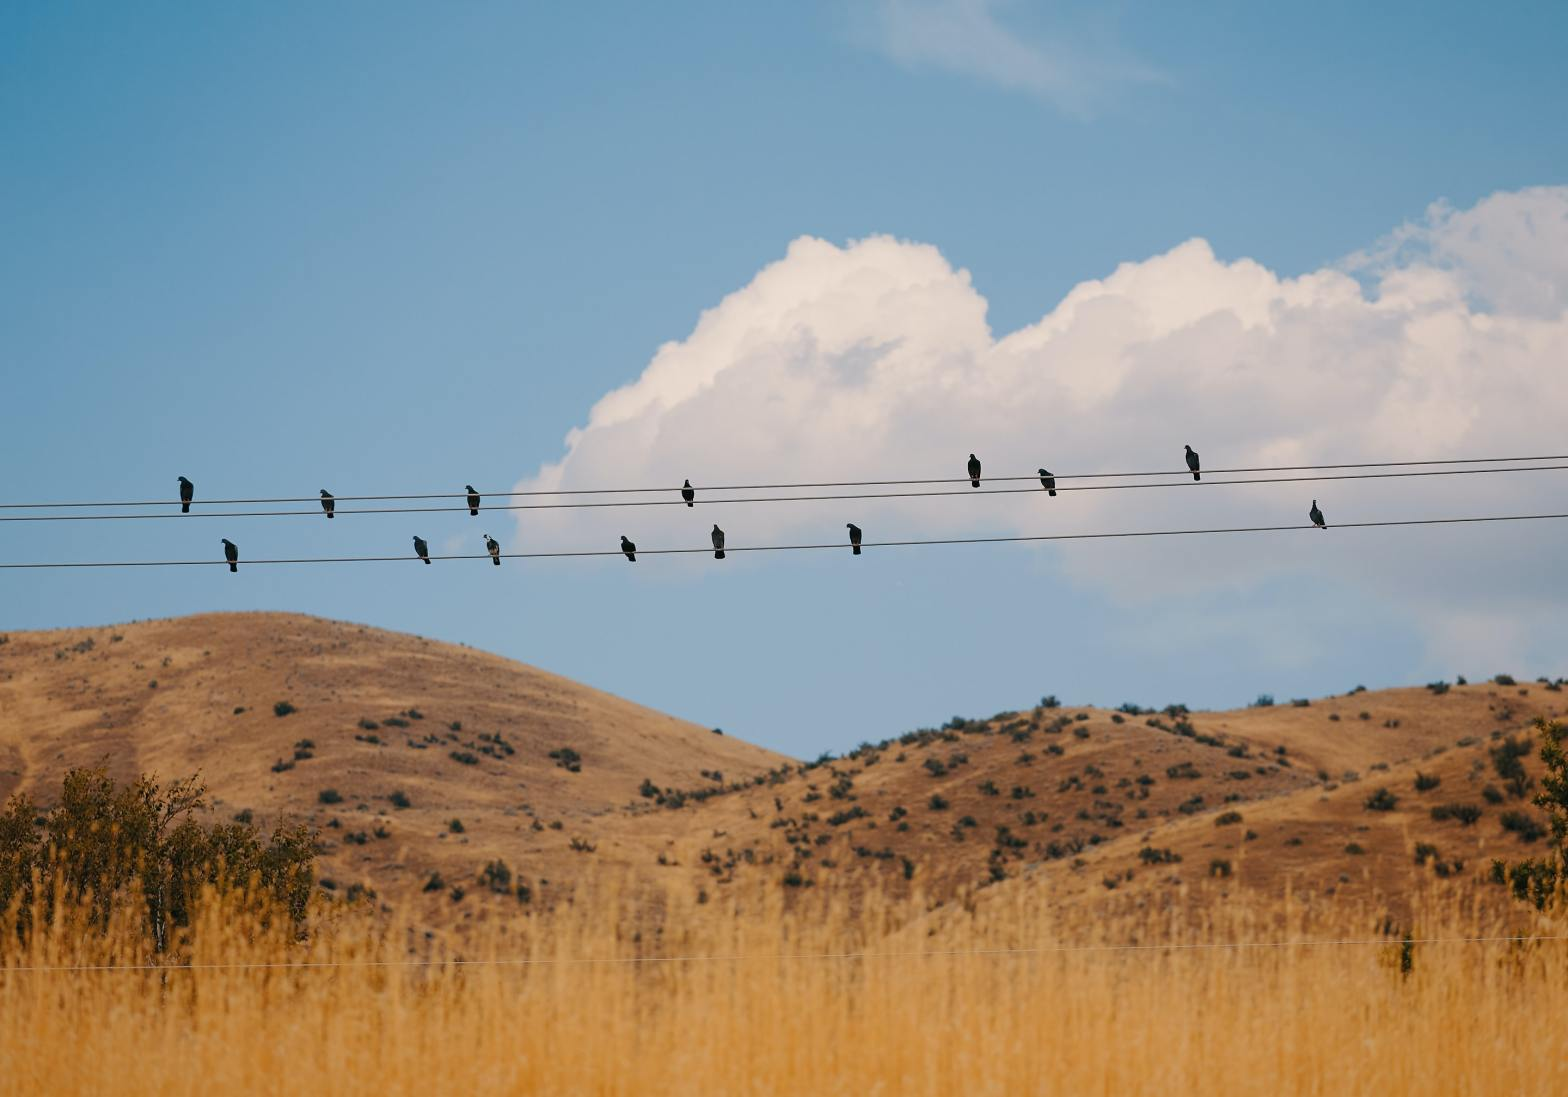 Birds on power lines with foothills in background